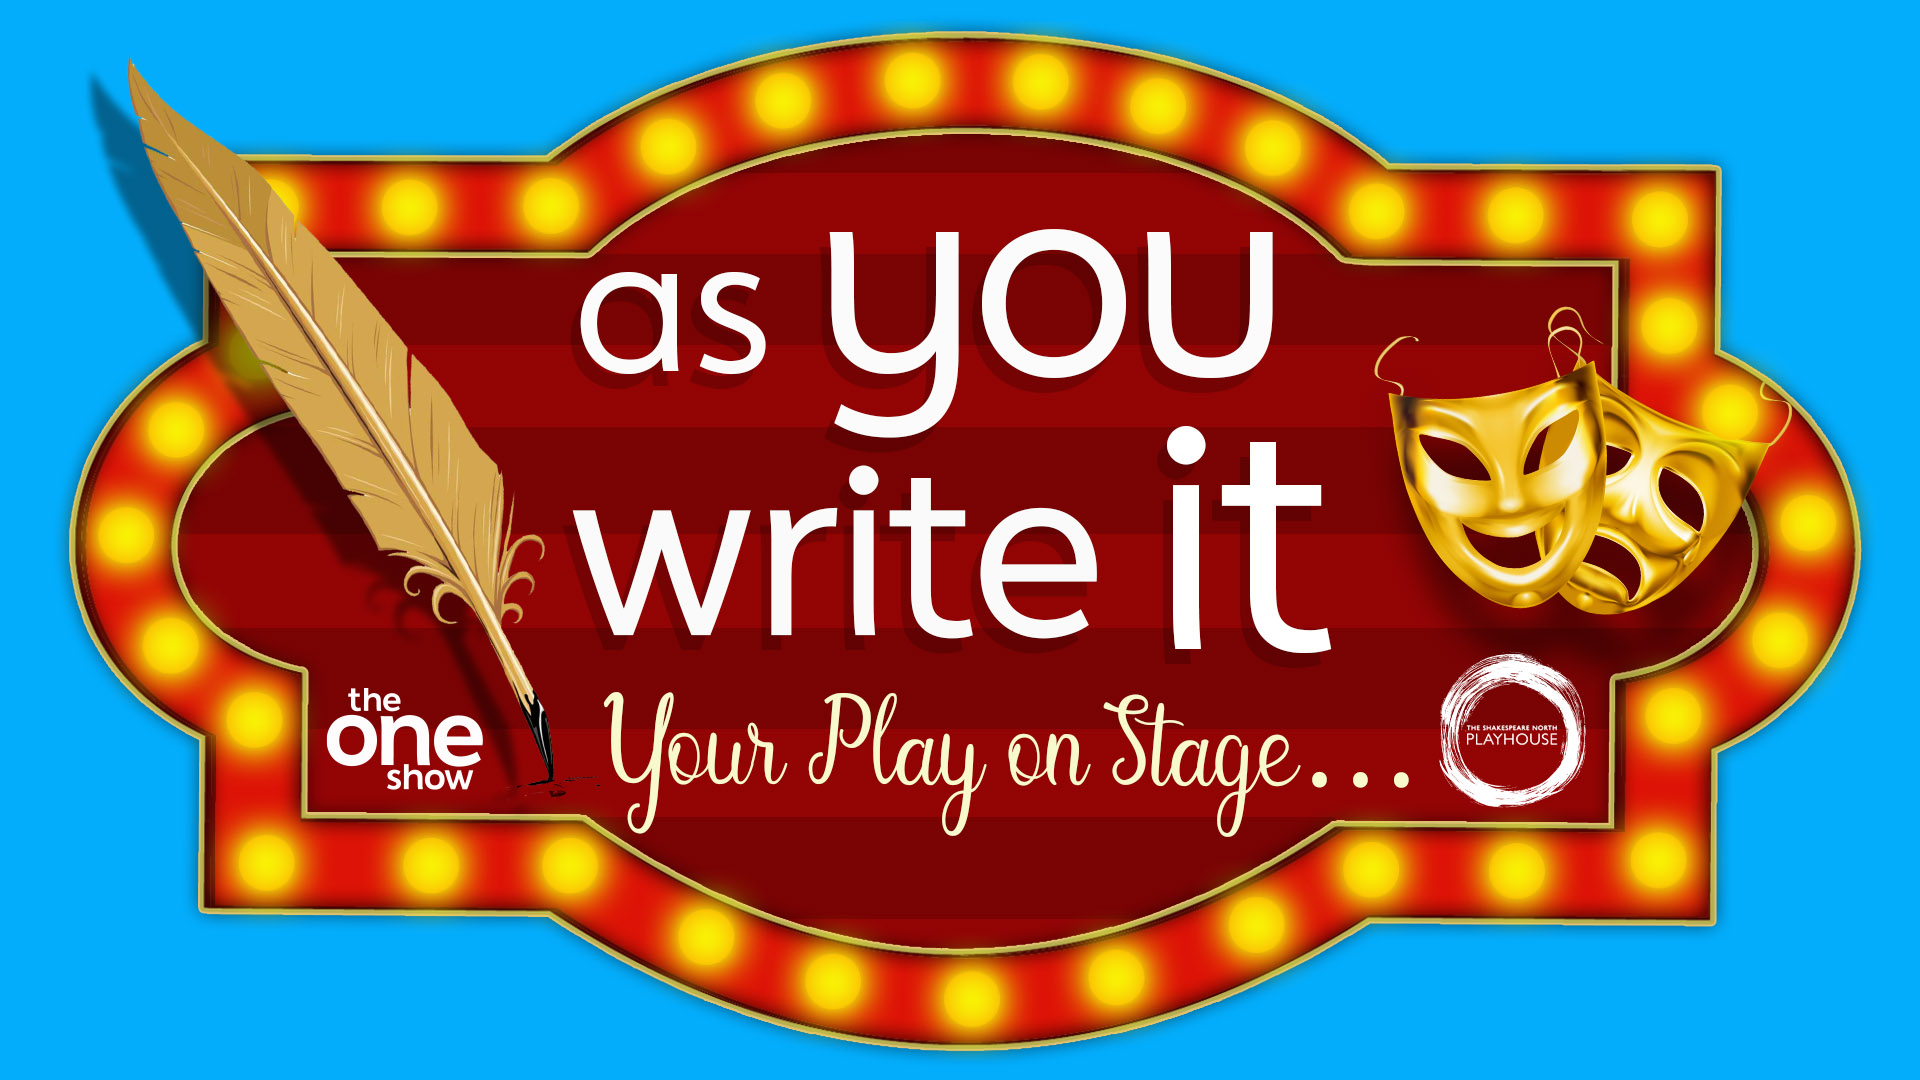 'As You Write it, Your Play on Stage' playwriting competition